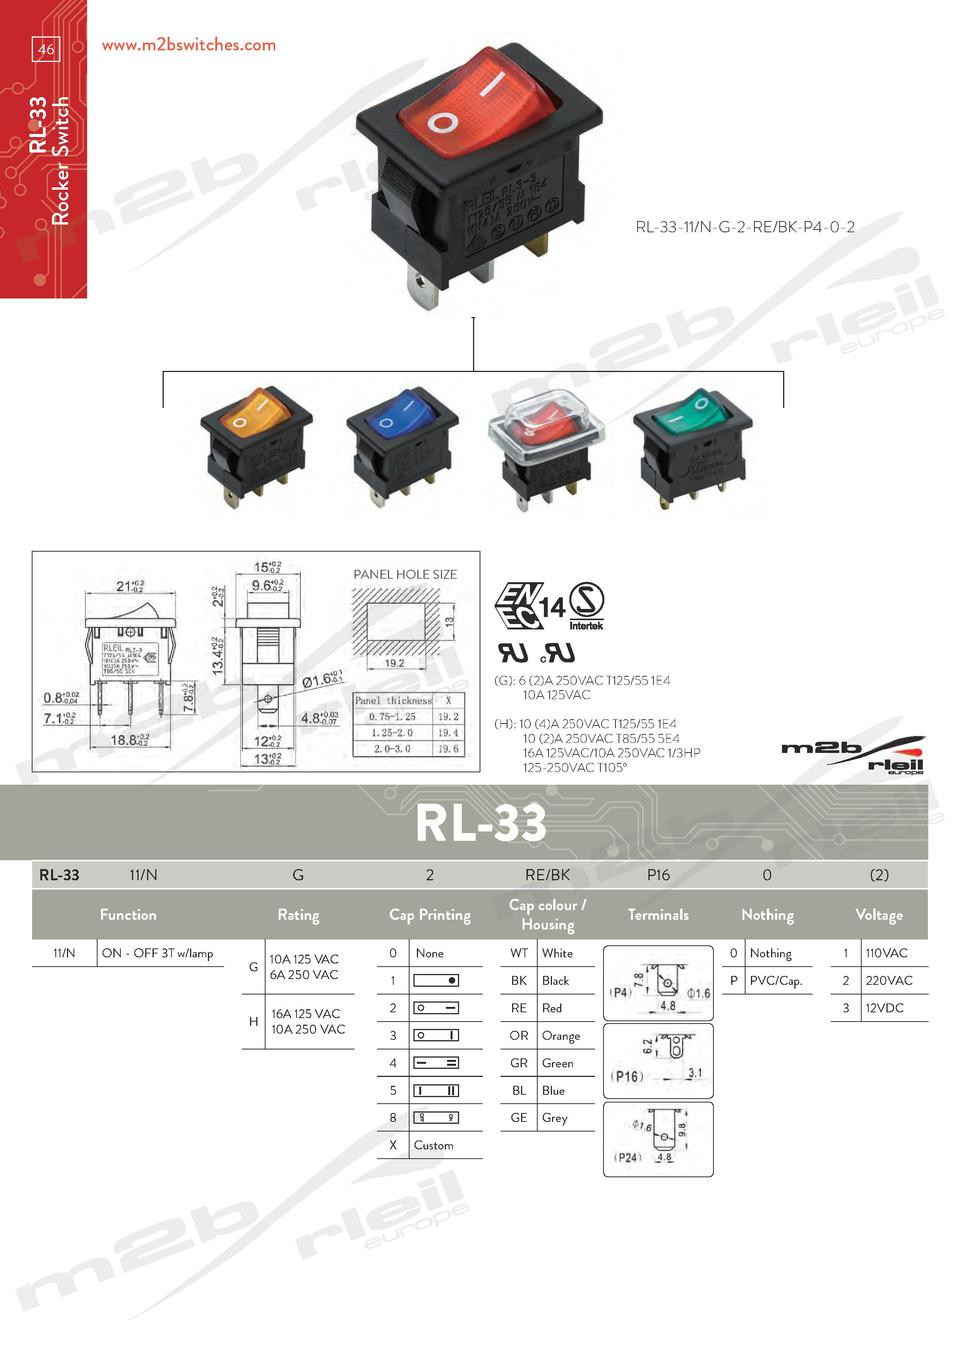 www.m2bswitches.com  RL-33 Rocker Switch  46  RL-33-11 N-G-2-RE BK-P4-0-2  PANEL HOLE SIZE   G   6  2 A 250VAC T125 55 1E4...